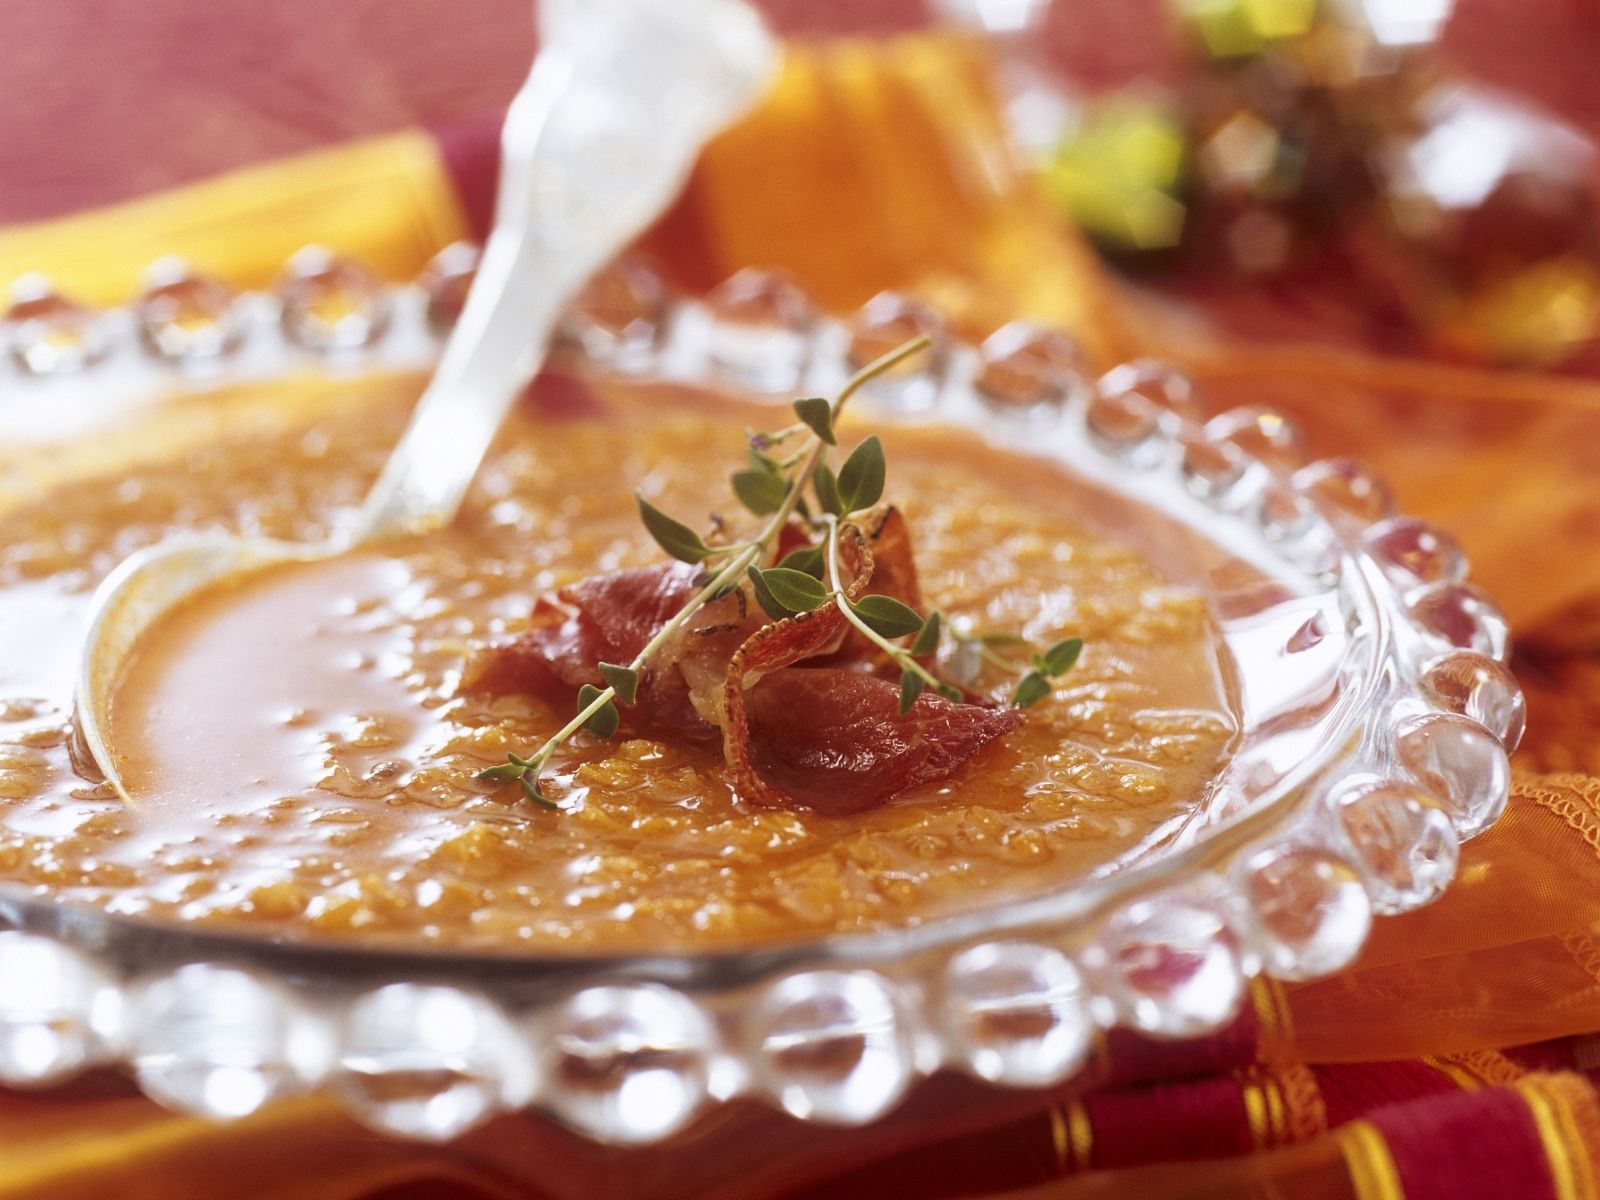 Rote Linsensuppe mit Speck Rezept | EAT SMARTER